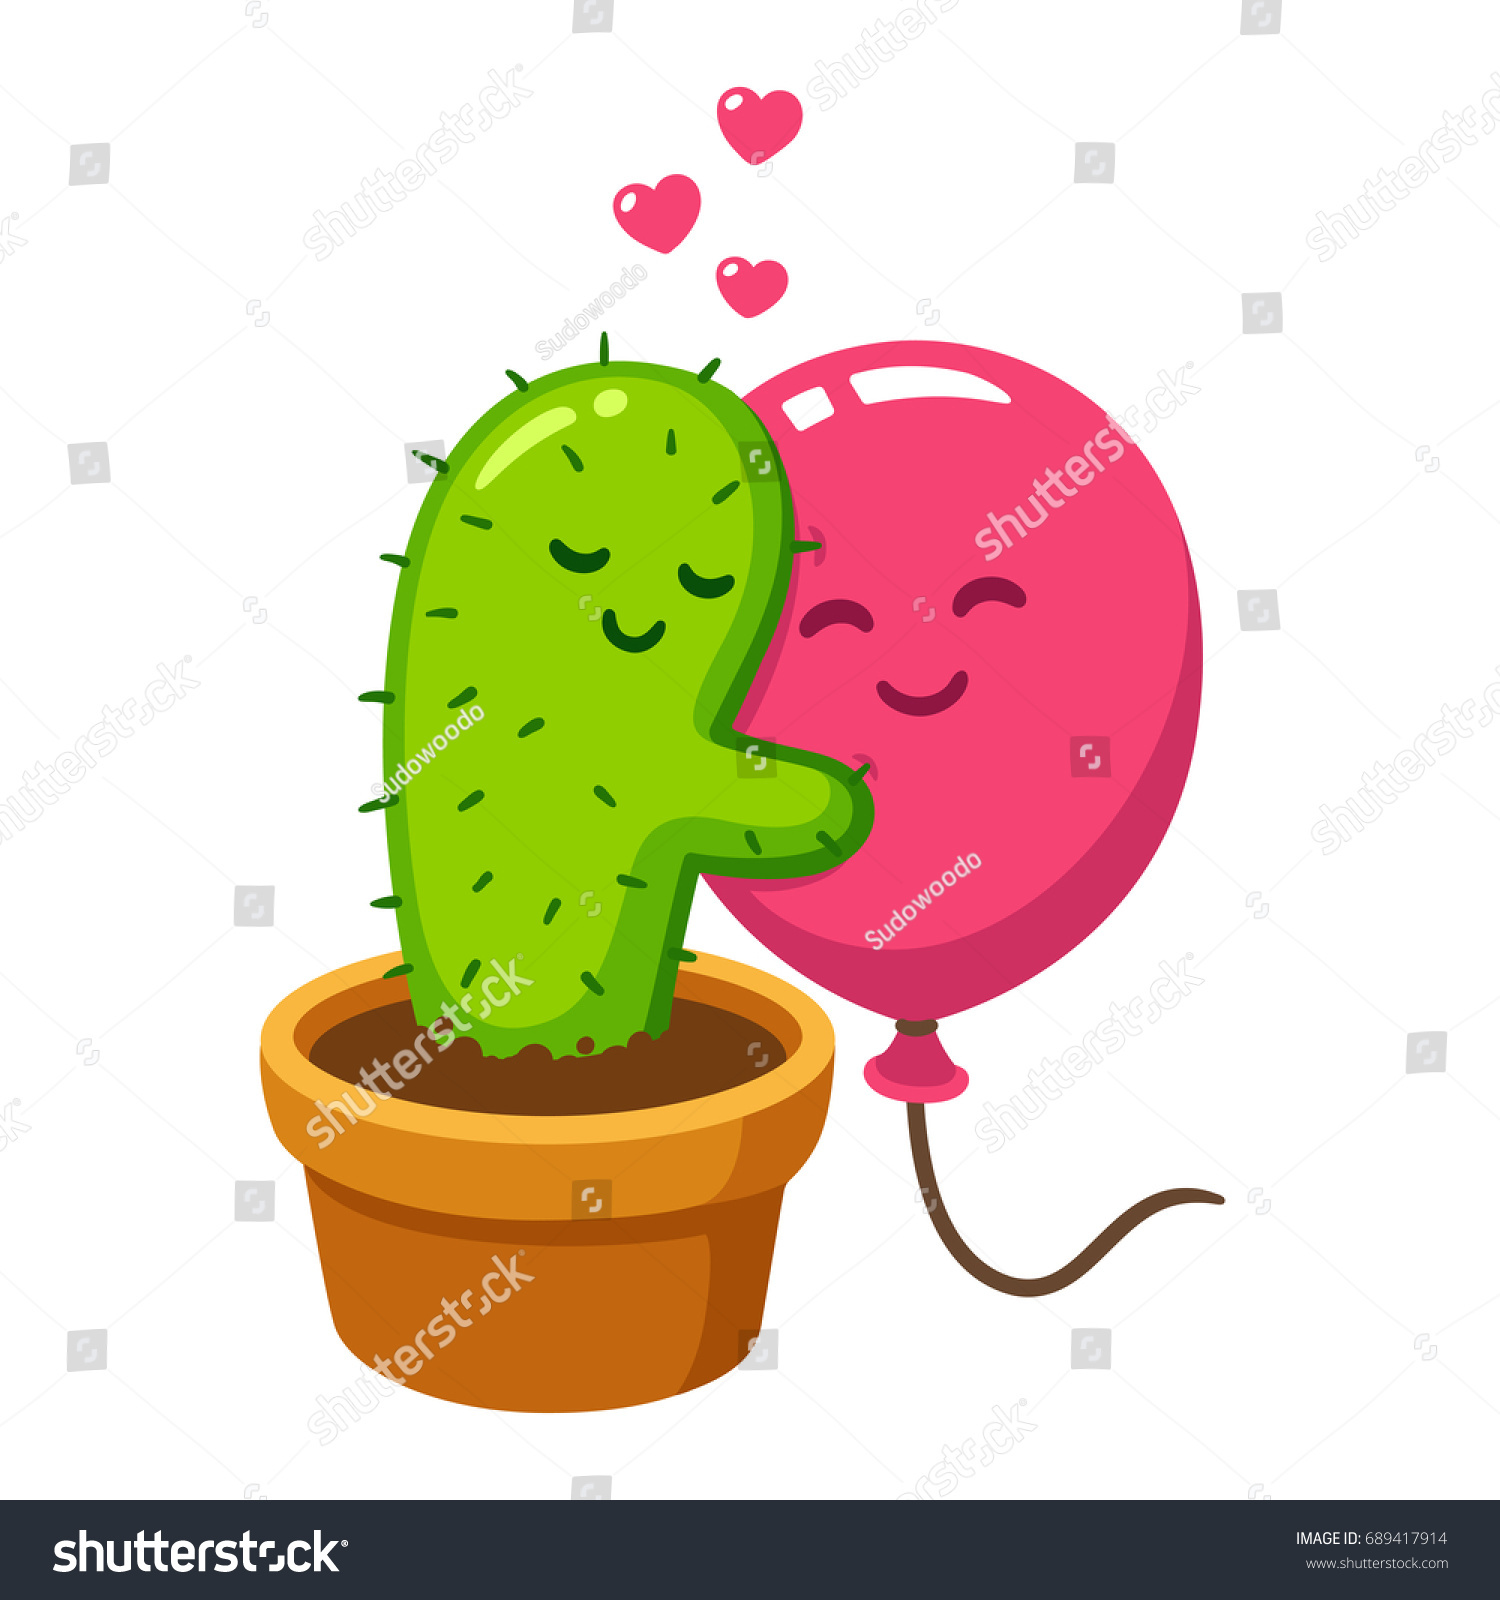 cute cartoon cactus and balloon hug vector drawing love hurts funny valentines day